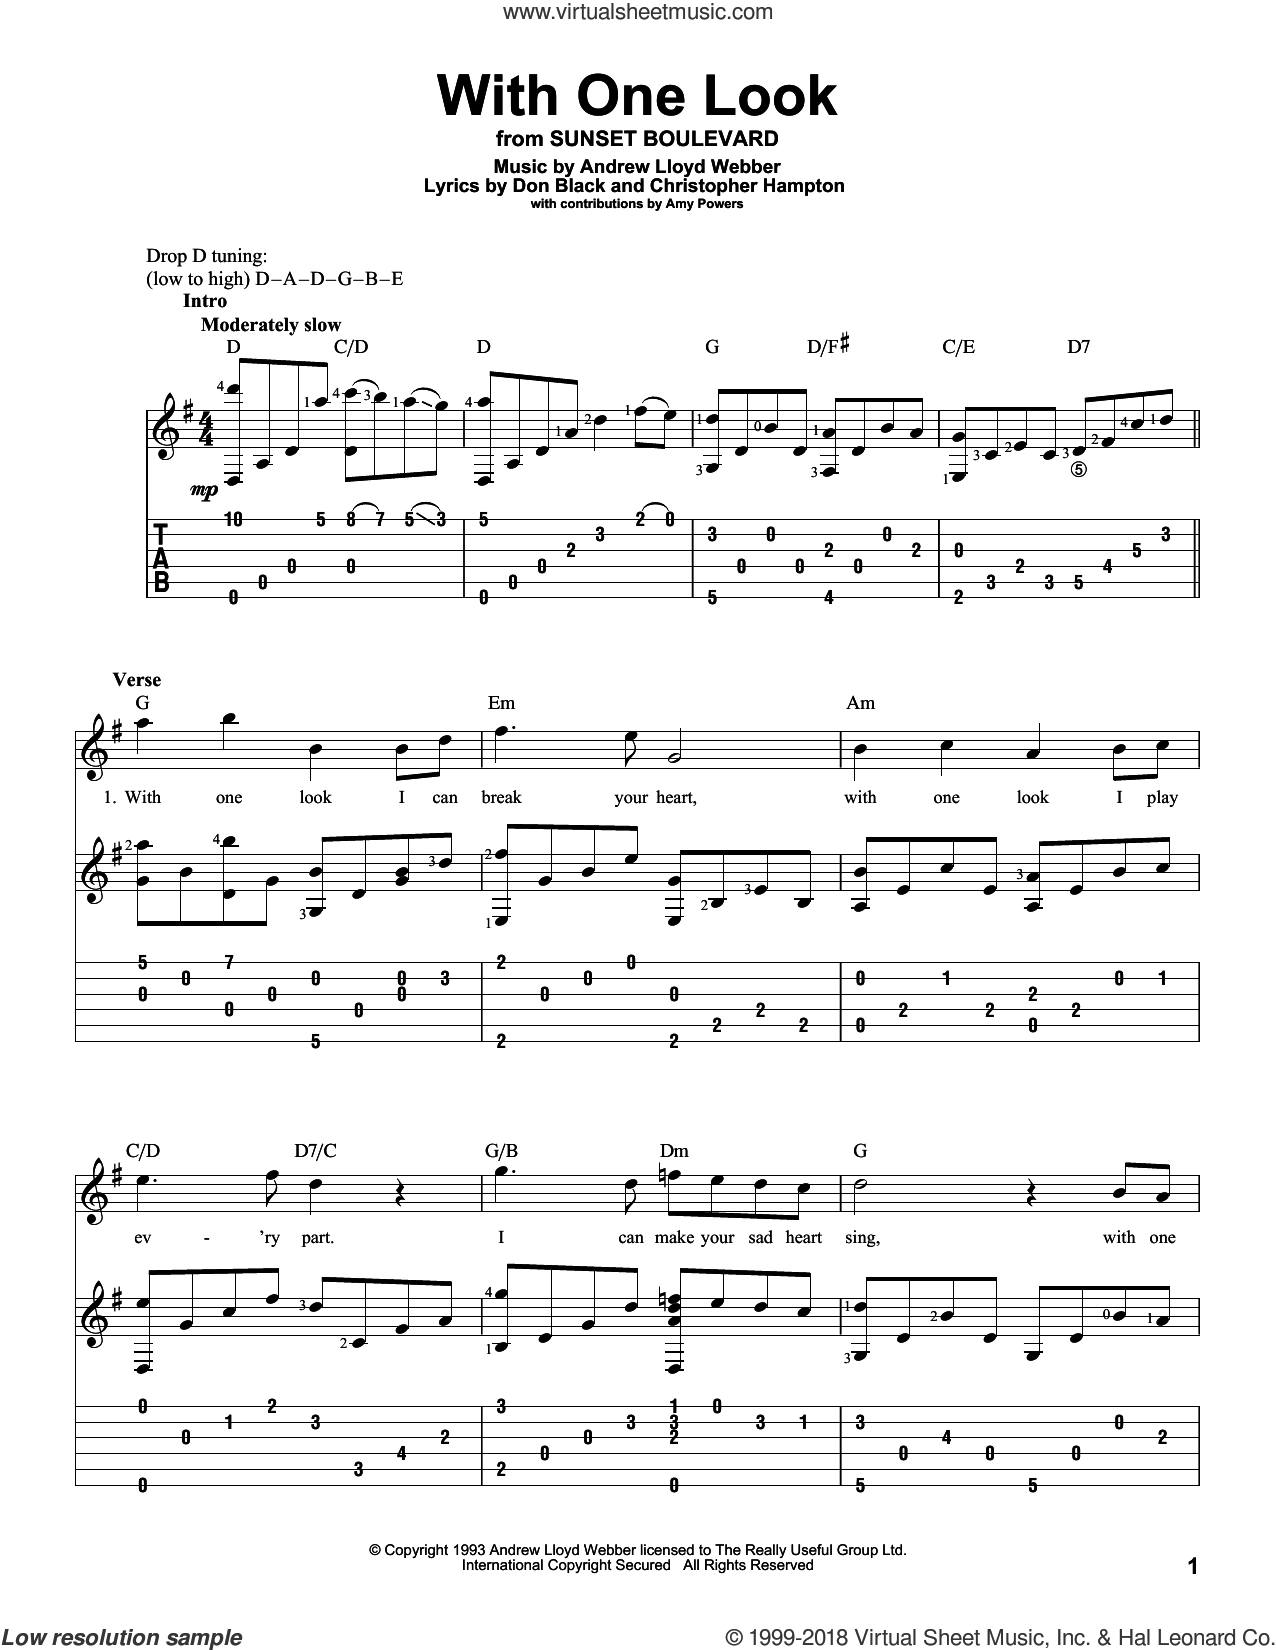 With One Look sheet music for guitar solo by Don Black